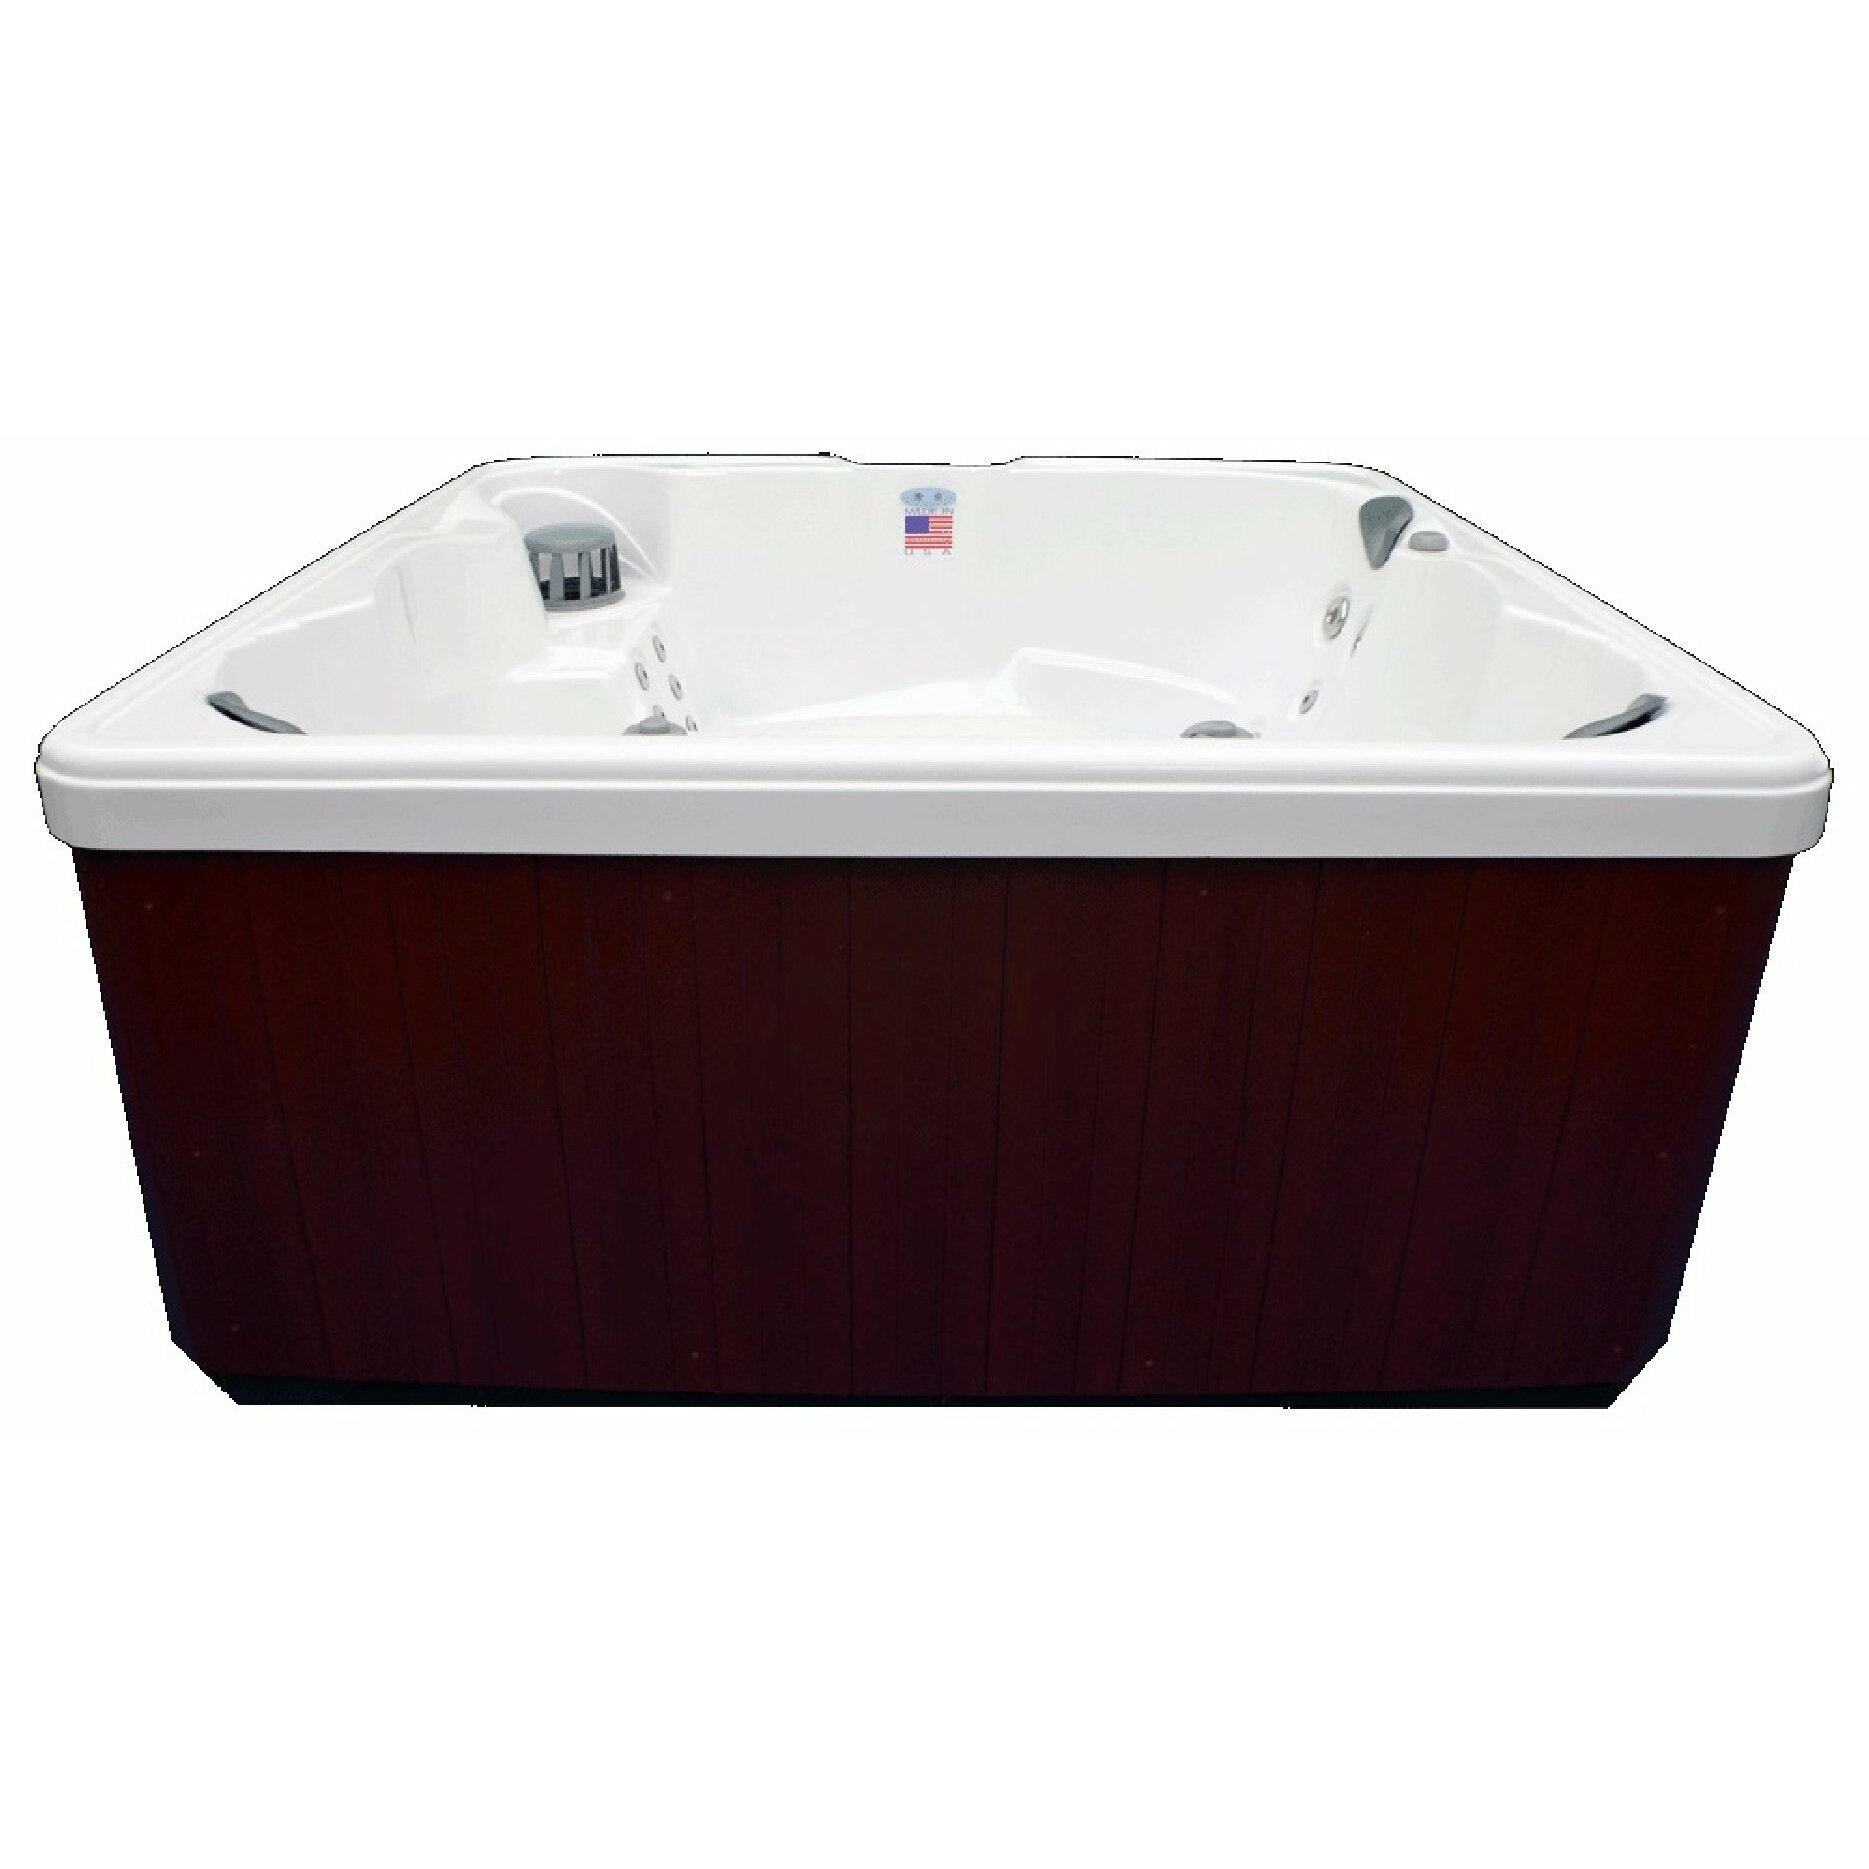 Home And Garden Spas 6 Person 32 Jet Spa With Ozone